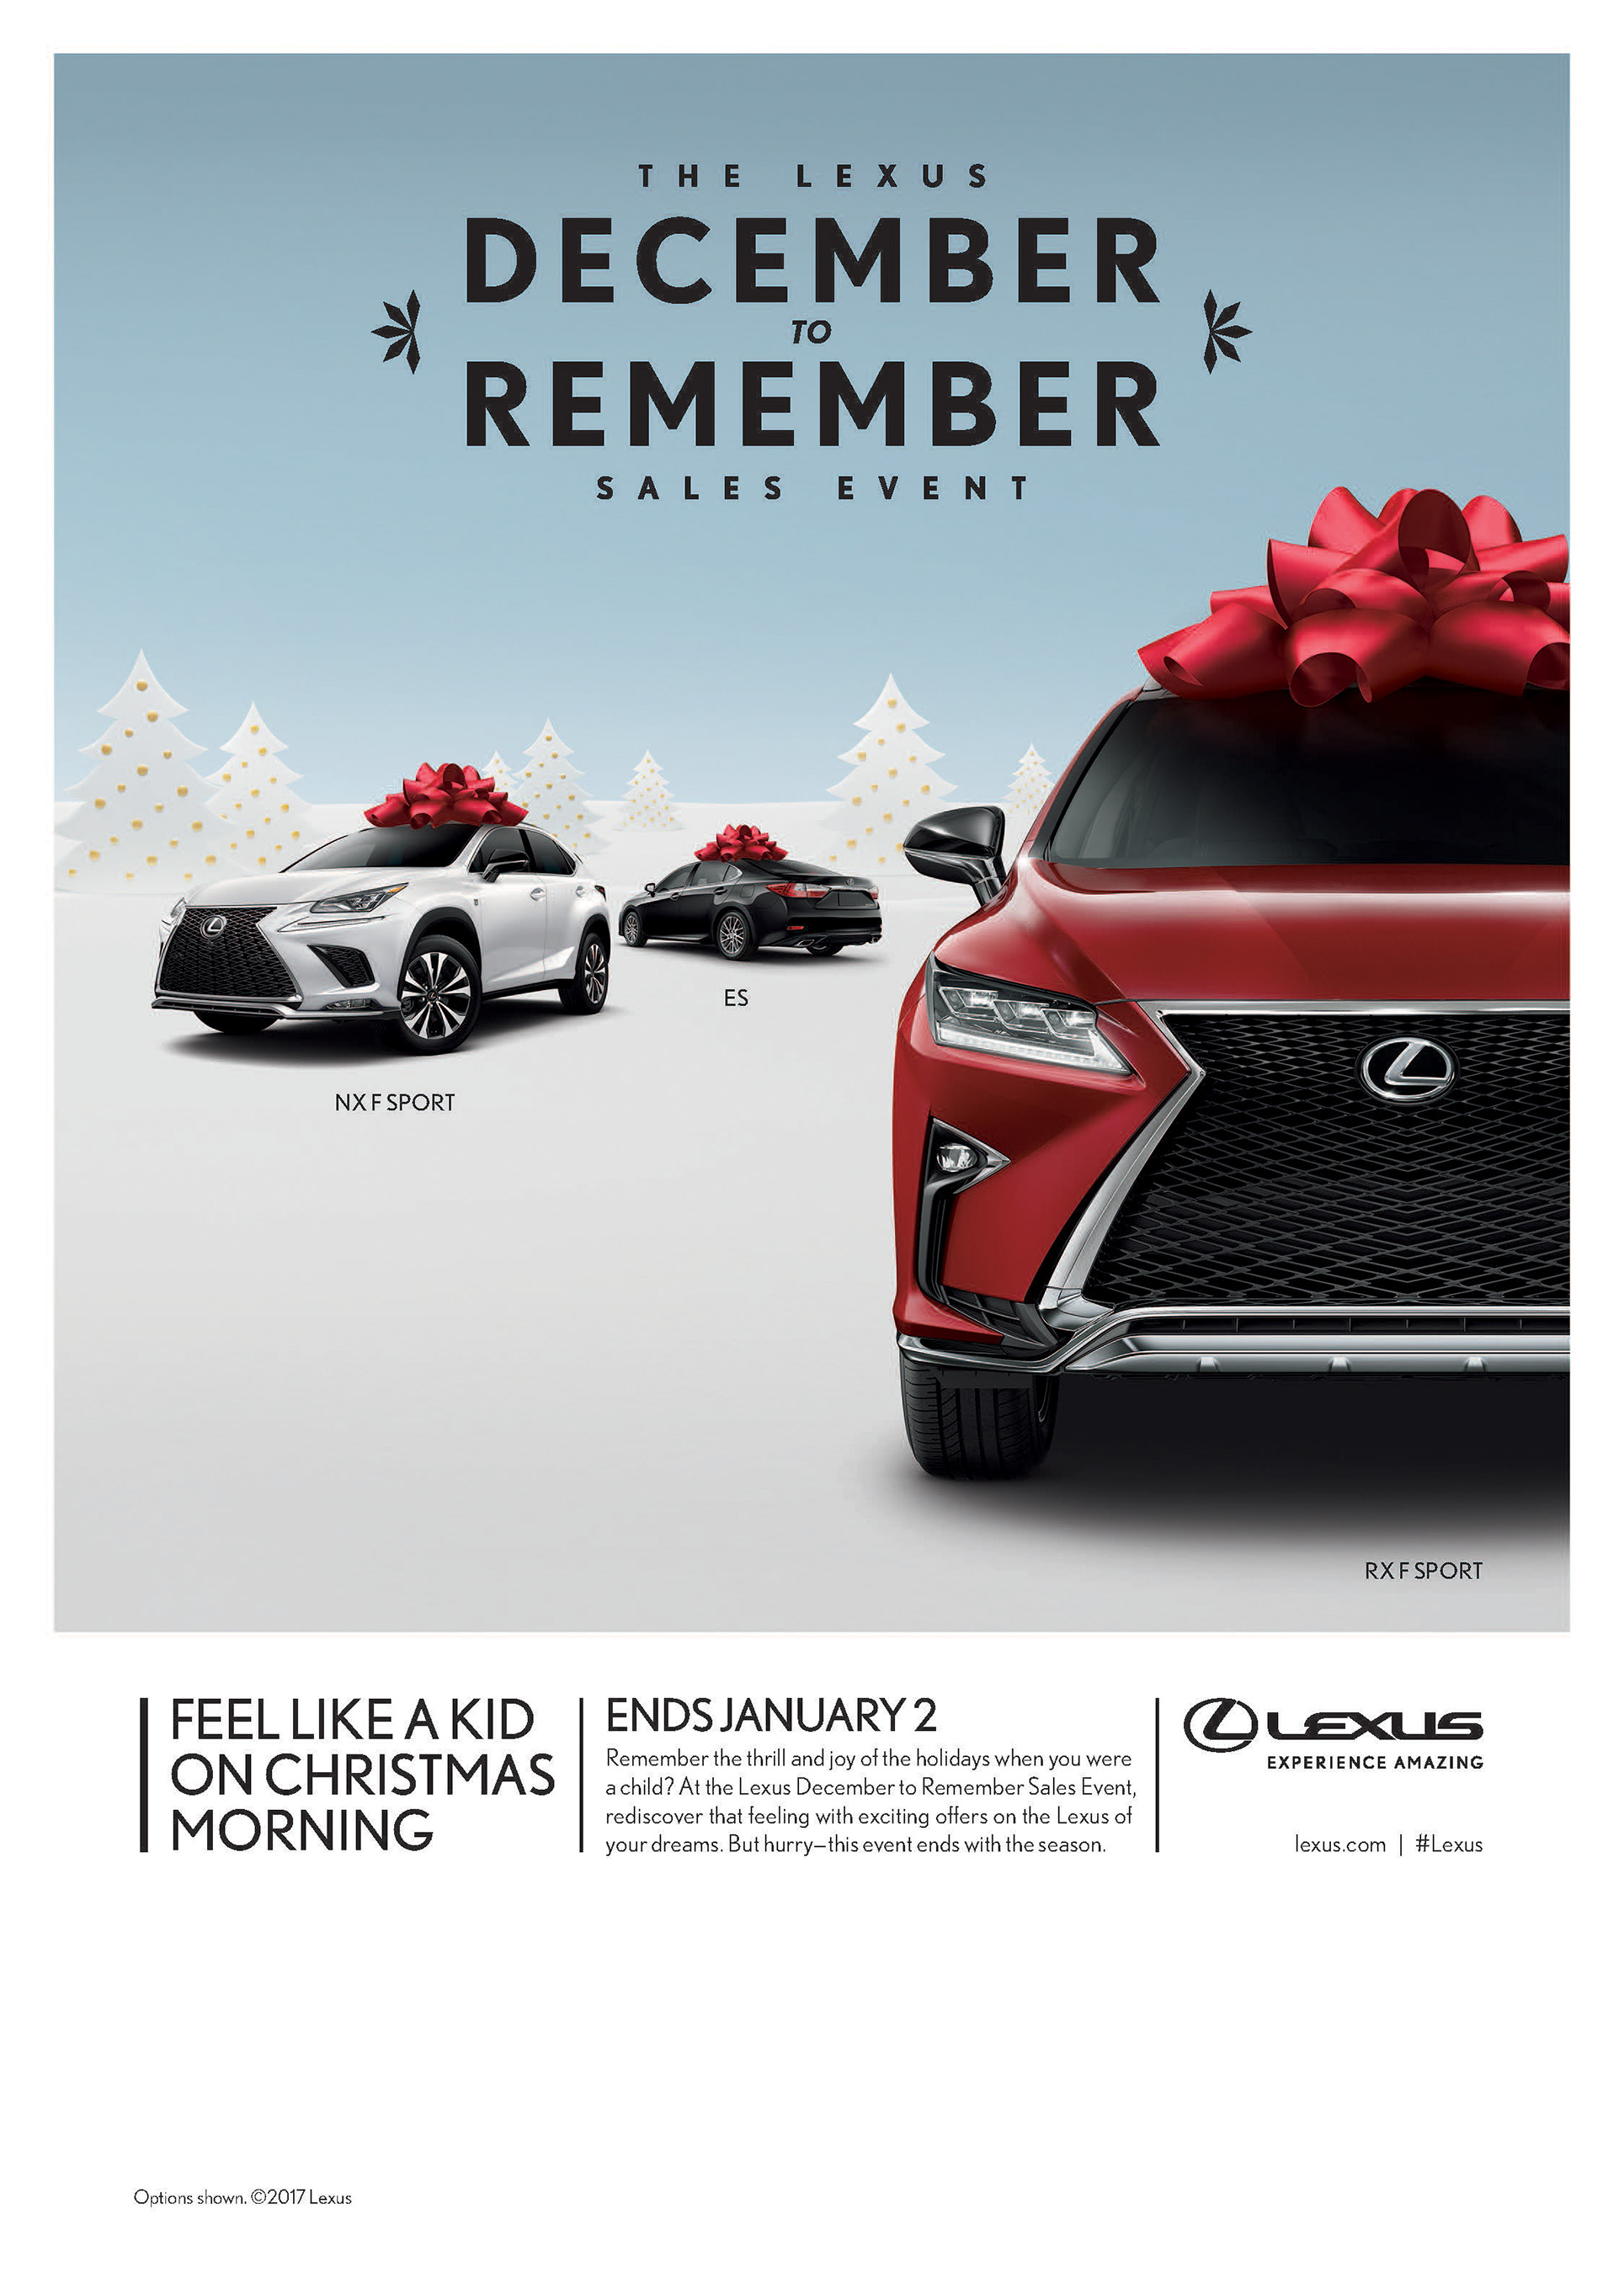 Superb 2017 Lexus December To Remember Sales Event Digital Ad